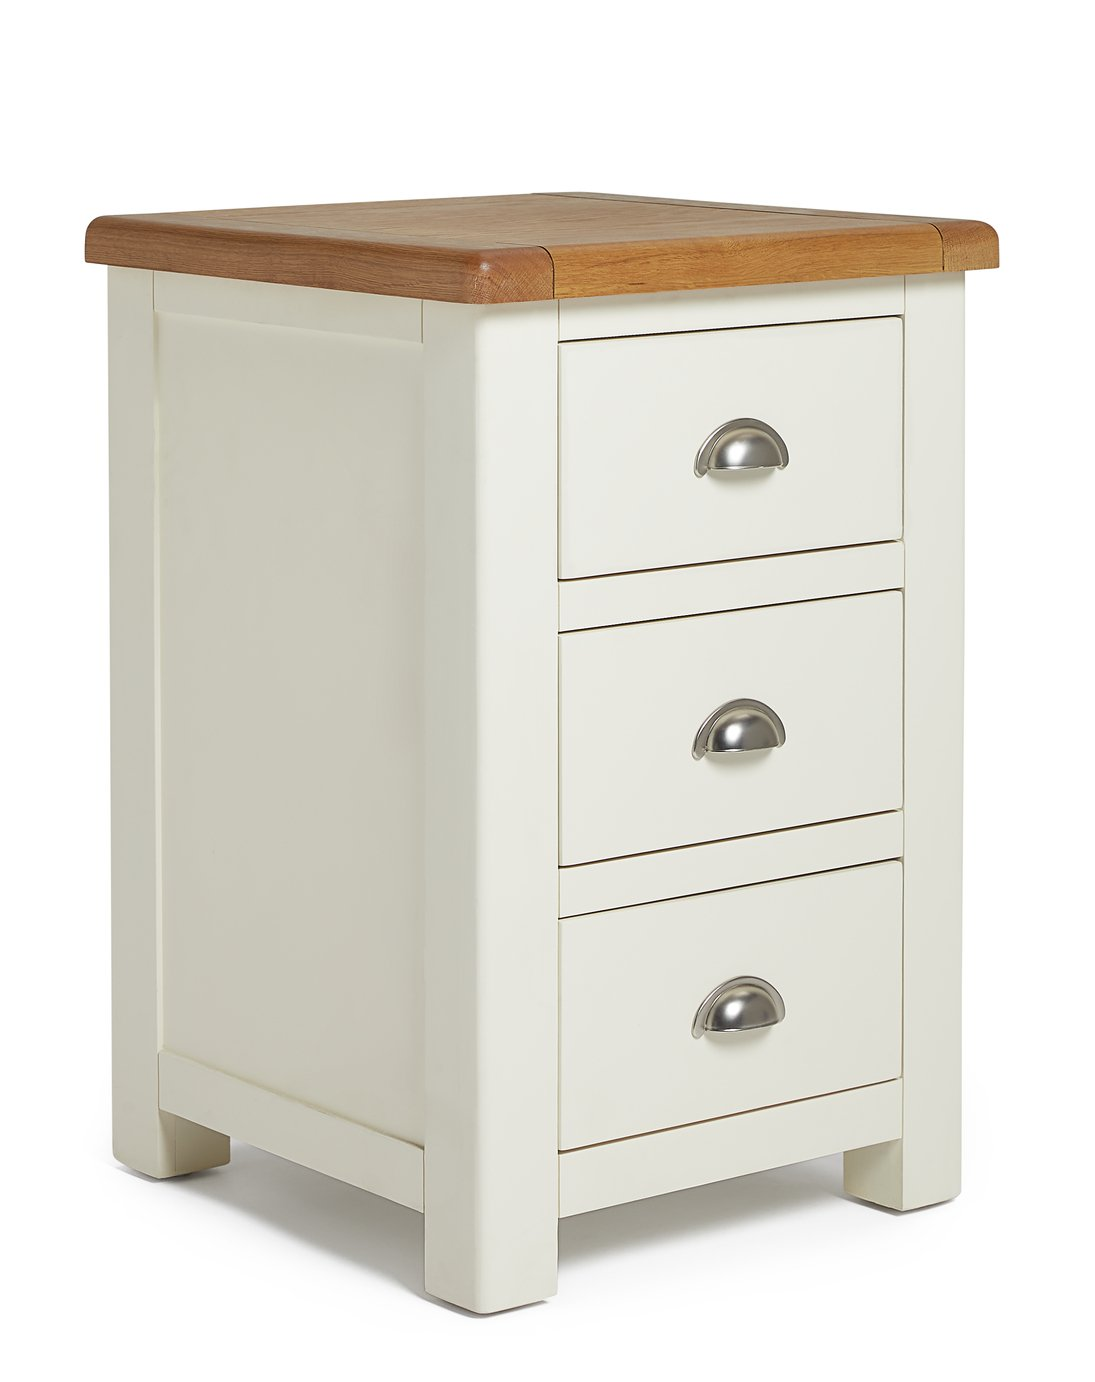 Argos bedside tables and cabinets bedroom furniture for Bedroom furniture argos